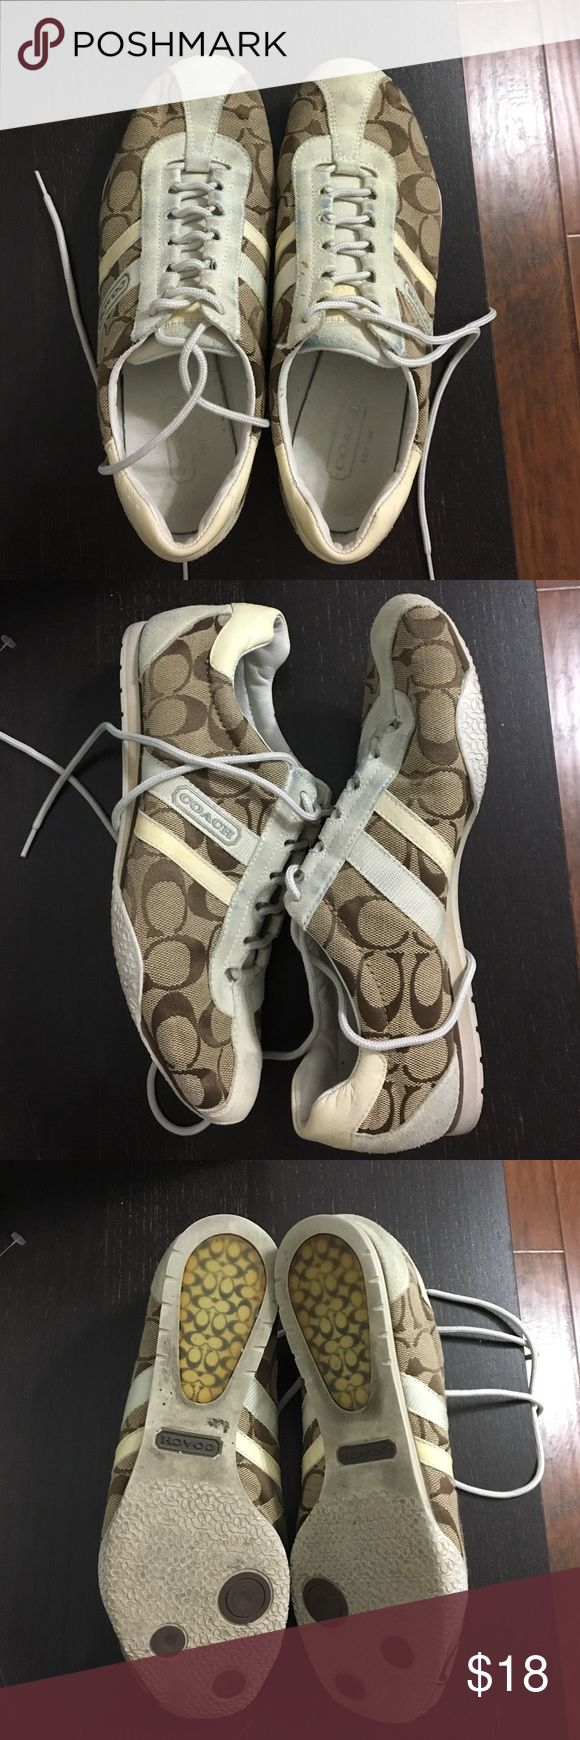 Coach tennis shoes Coach tennis shoes, have signs of wear please see the photos. Still have lots of life left, priced to sell! Coach Shoes Sneakers